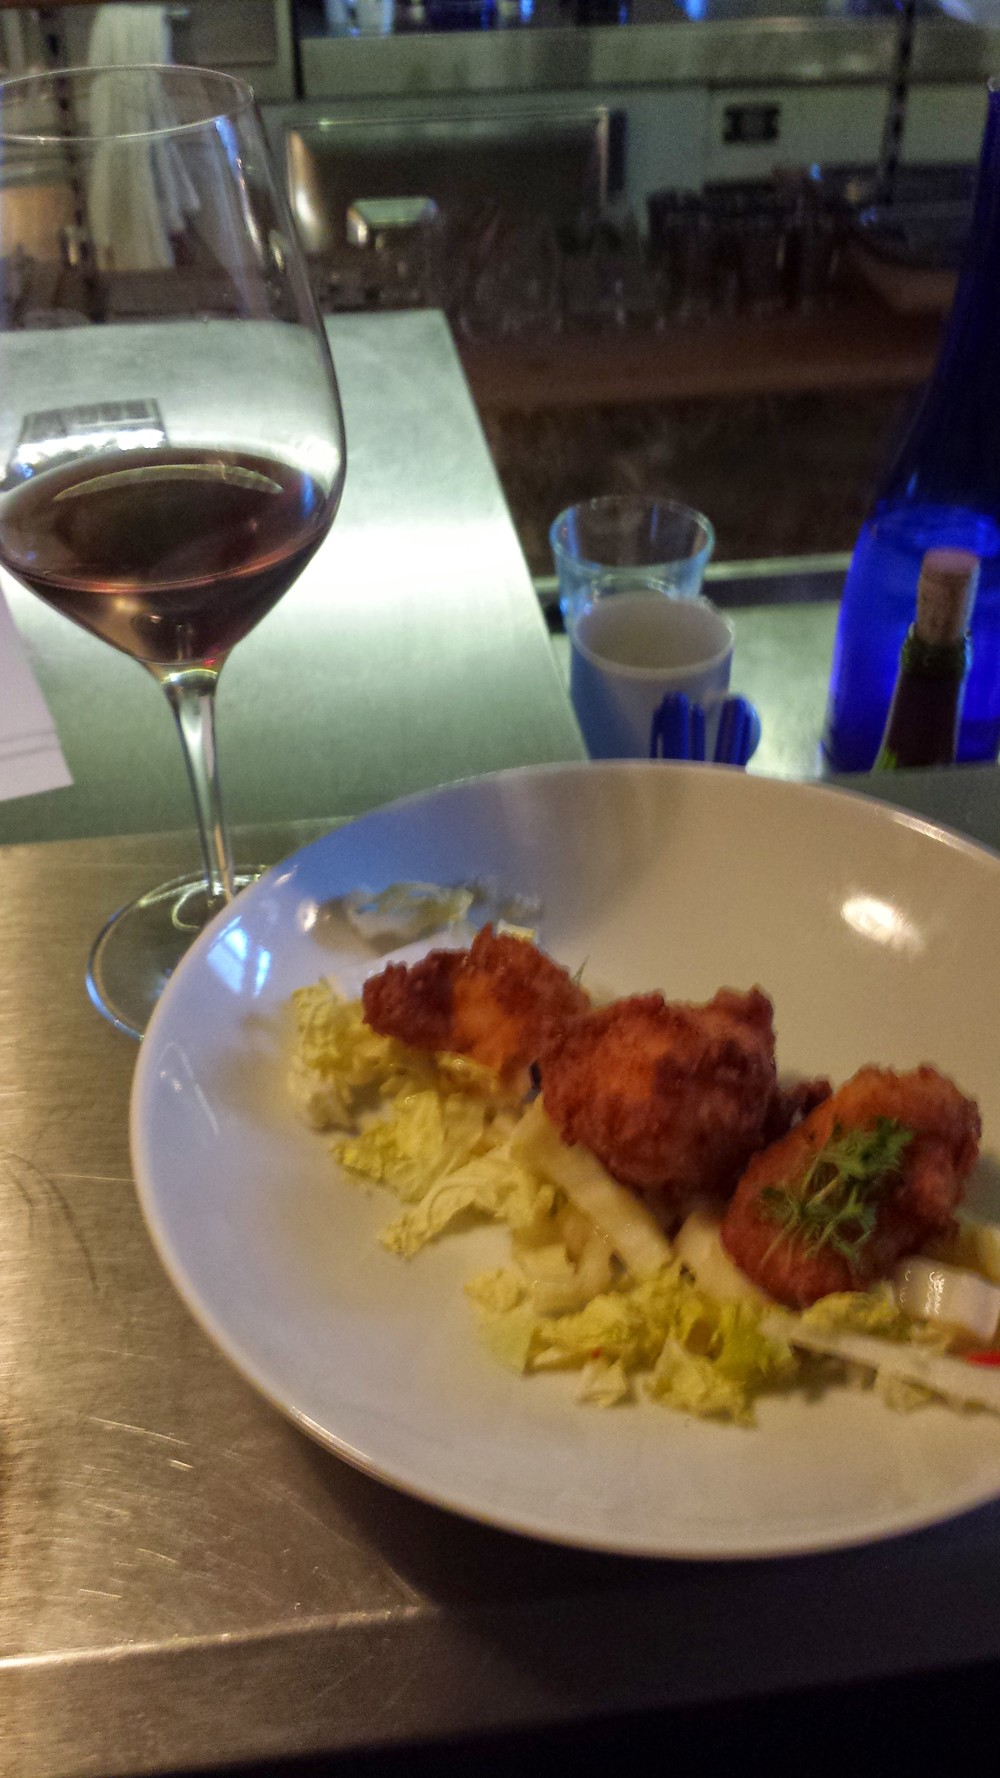 Buttermilk fried chicken with napa cabbage, red chilies, and micro greens.